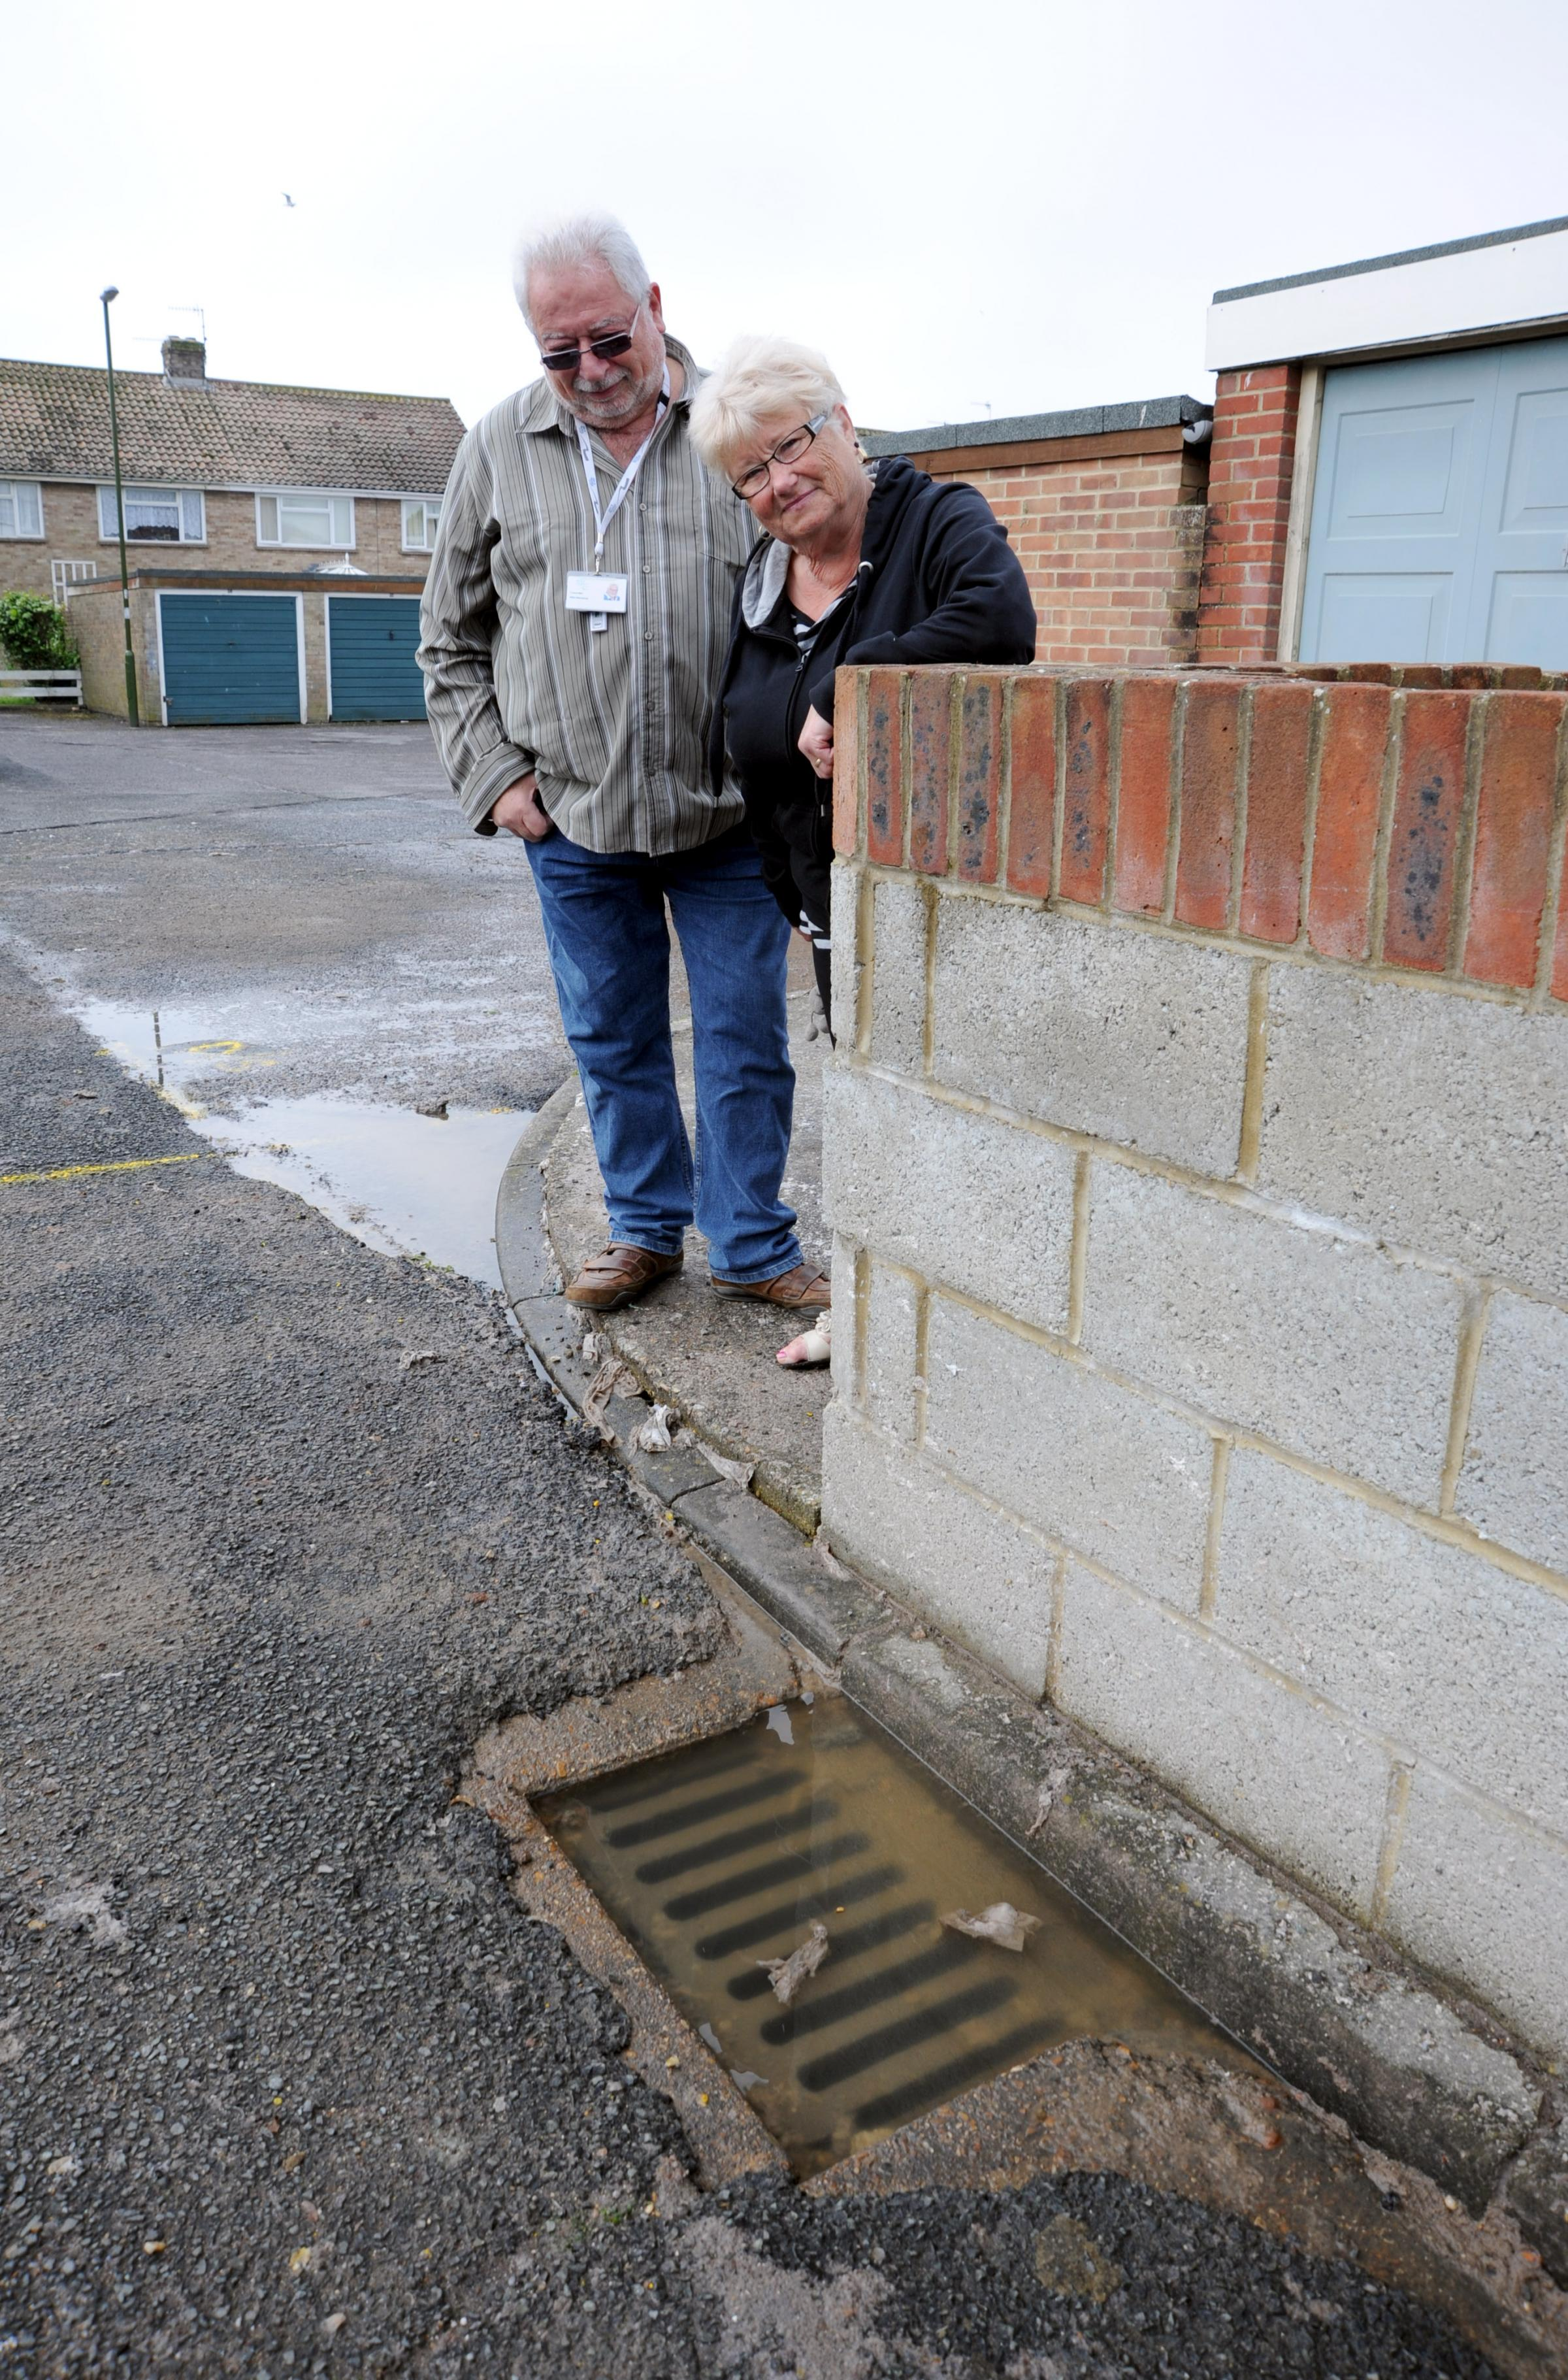 Resident Pat Tough shows Adur Cllr Mike Mendoza the overflowing storm drain problem at St Giles Close